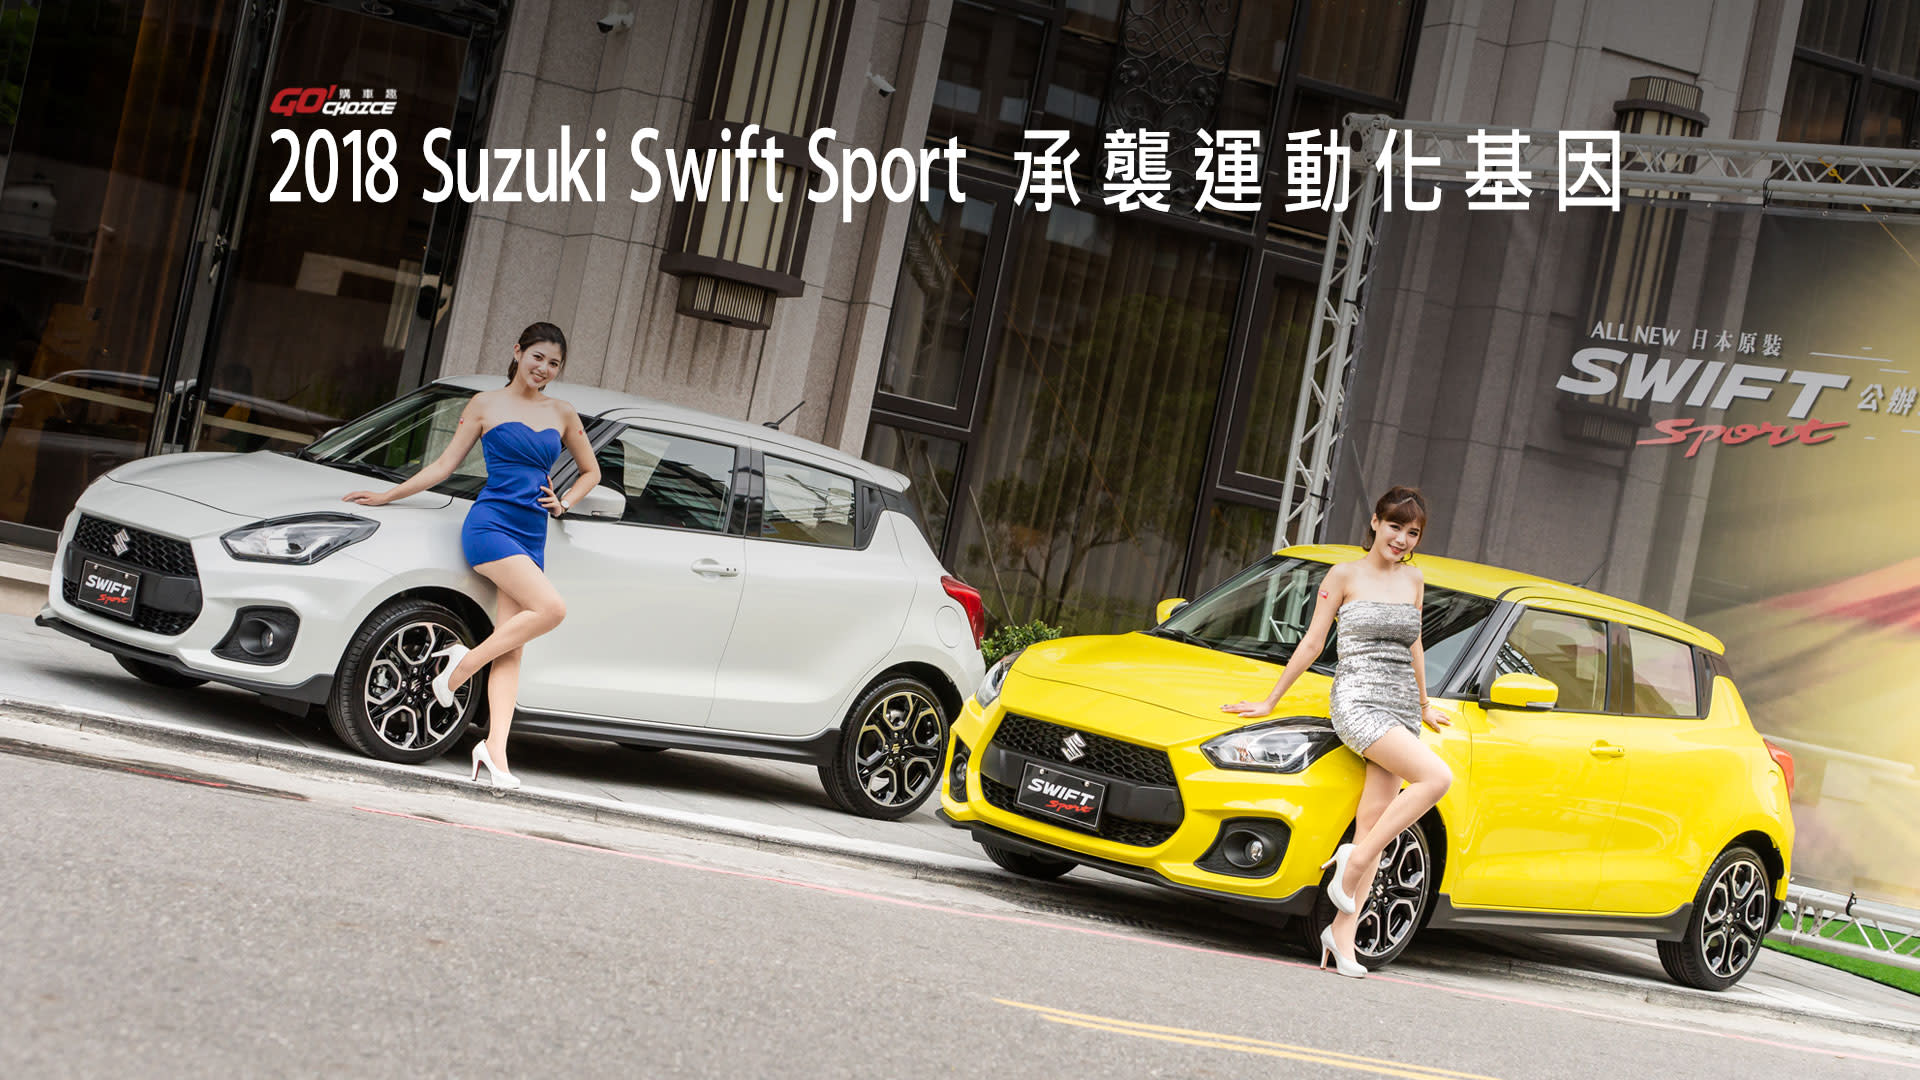 [微賞車]Suzuki Swift Sport_承襲運動化基因